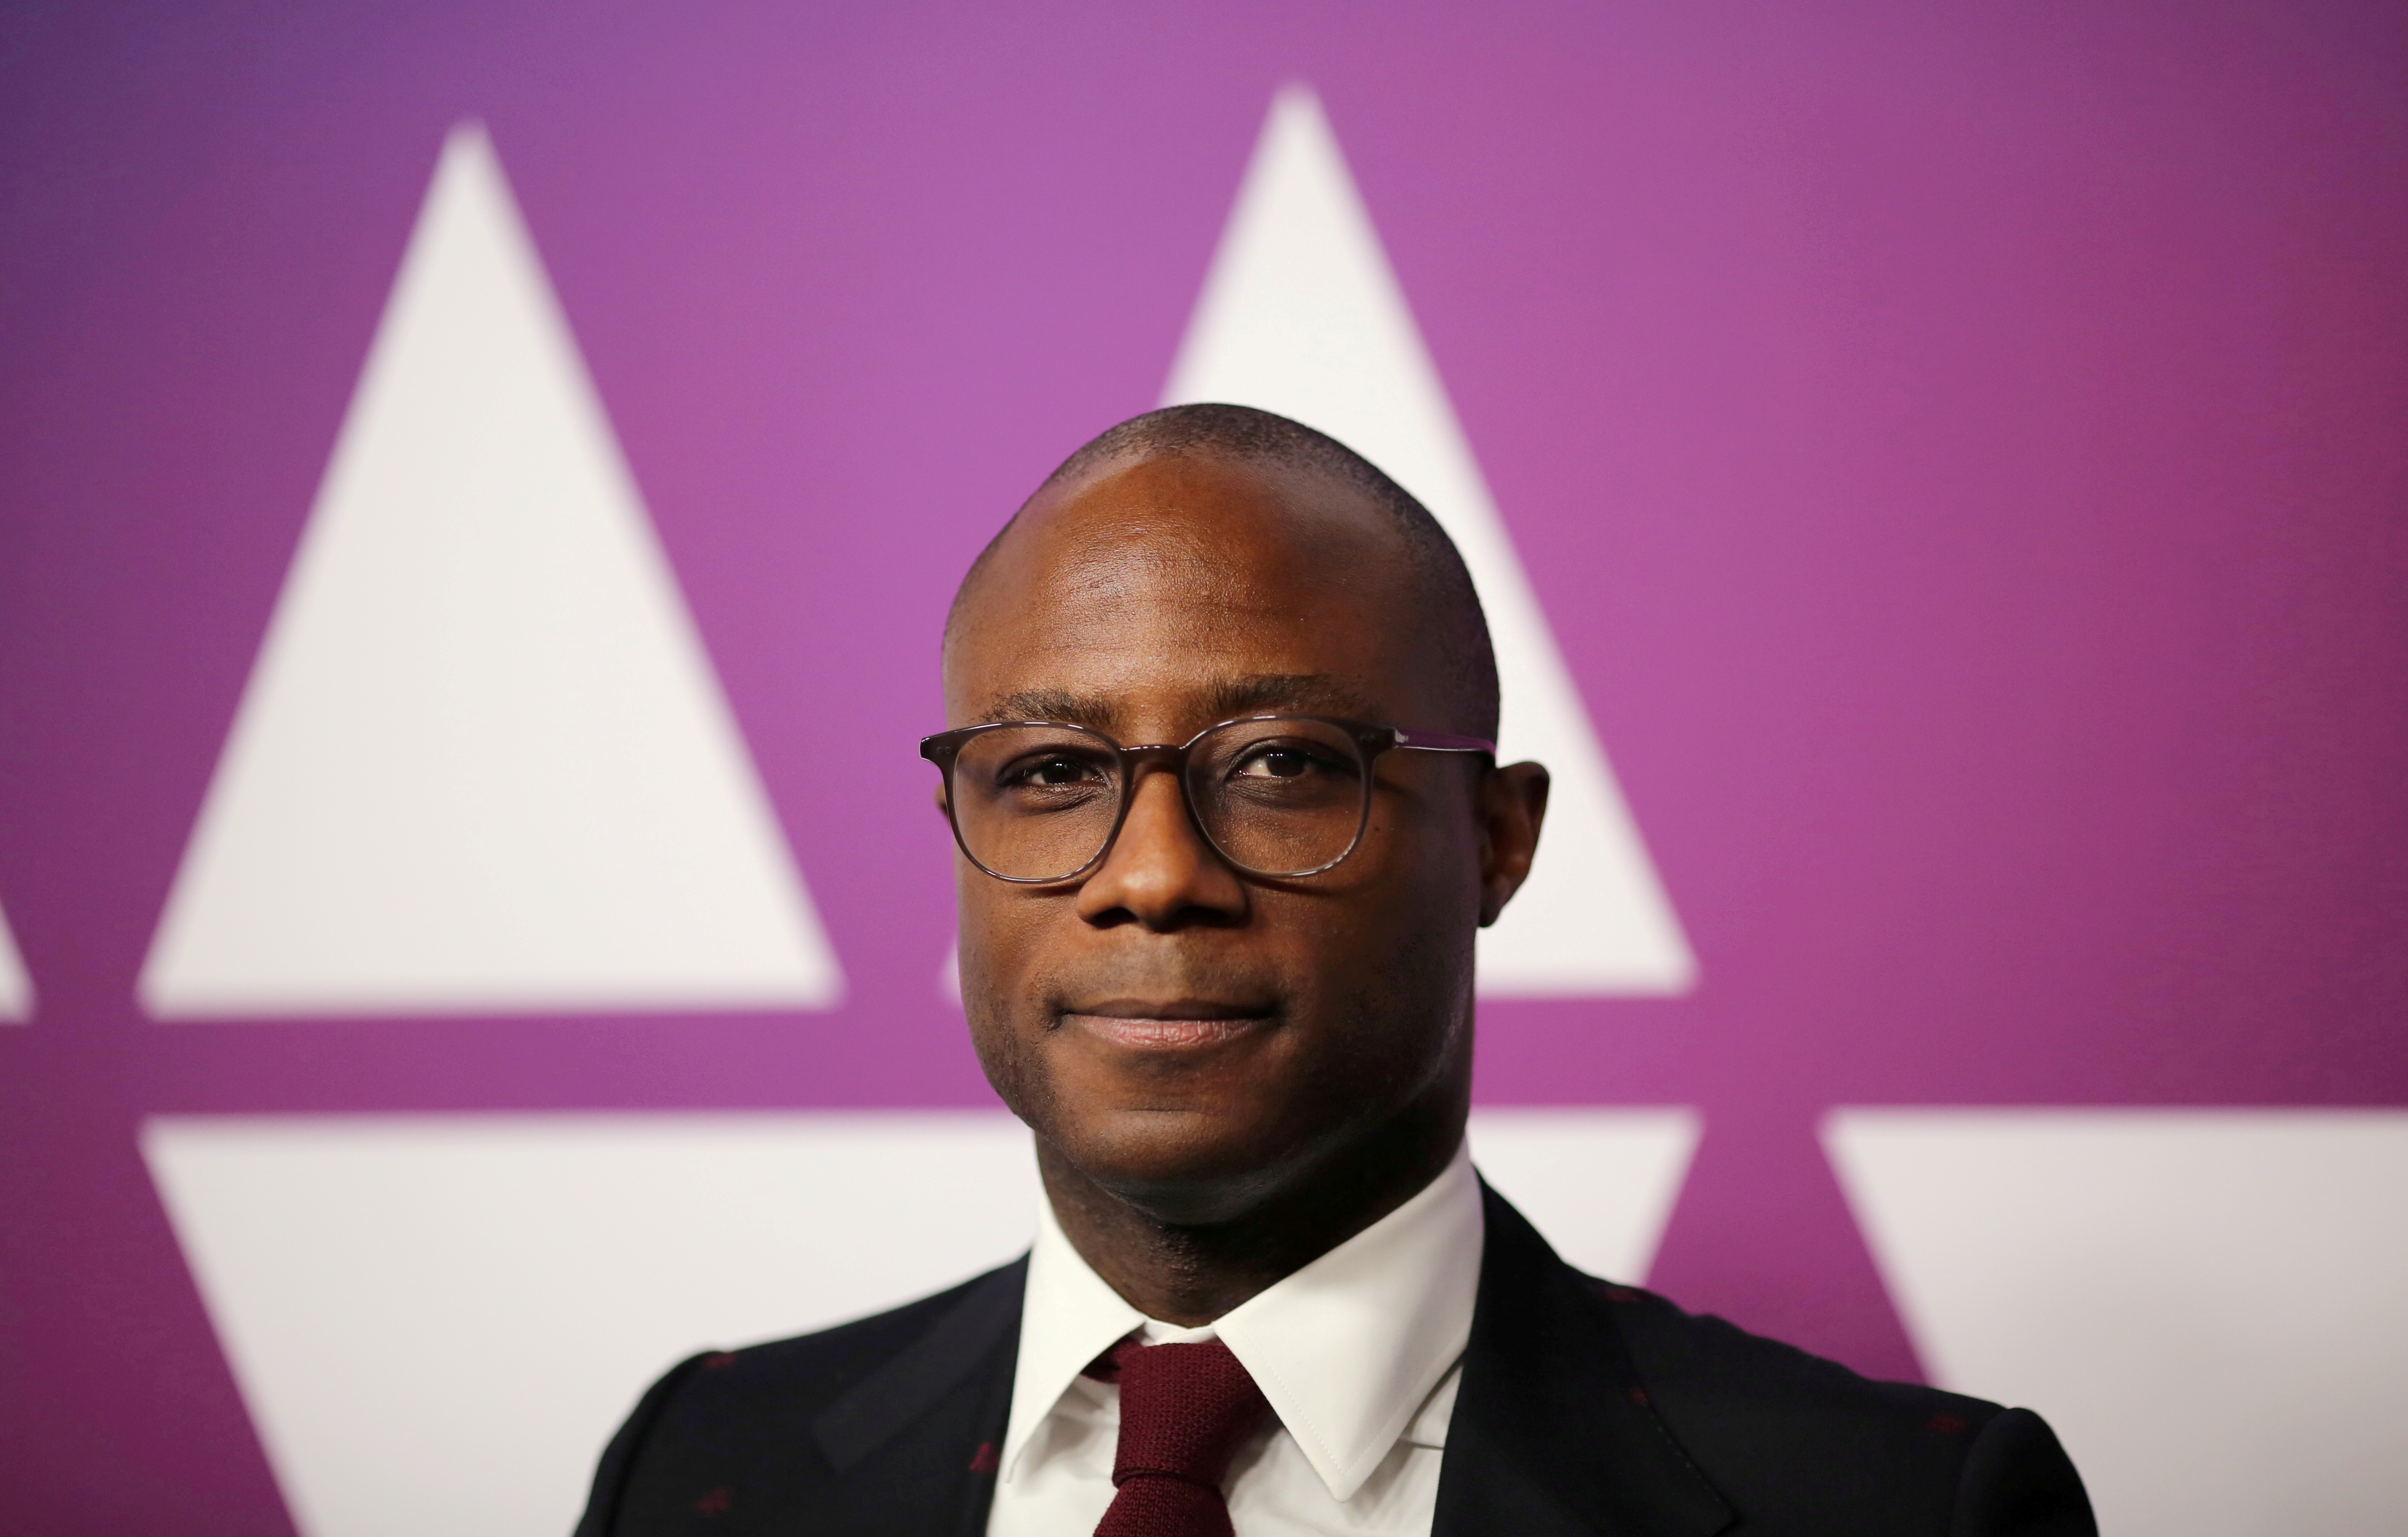 Director Barry Jenkins attends the 91st Oscars Nominees Luncheon in Beverly Hills, California, U.S. February 4, 2019. REUTERS/David McNew/File Photo